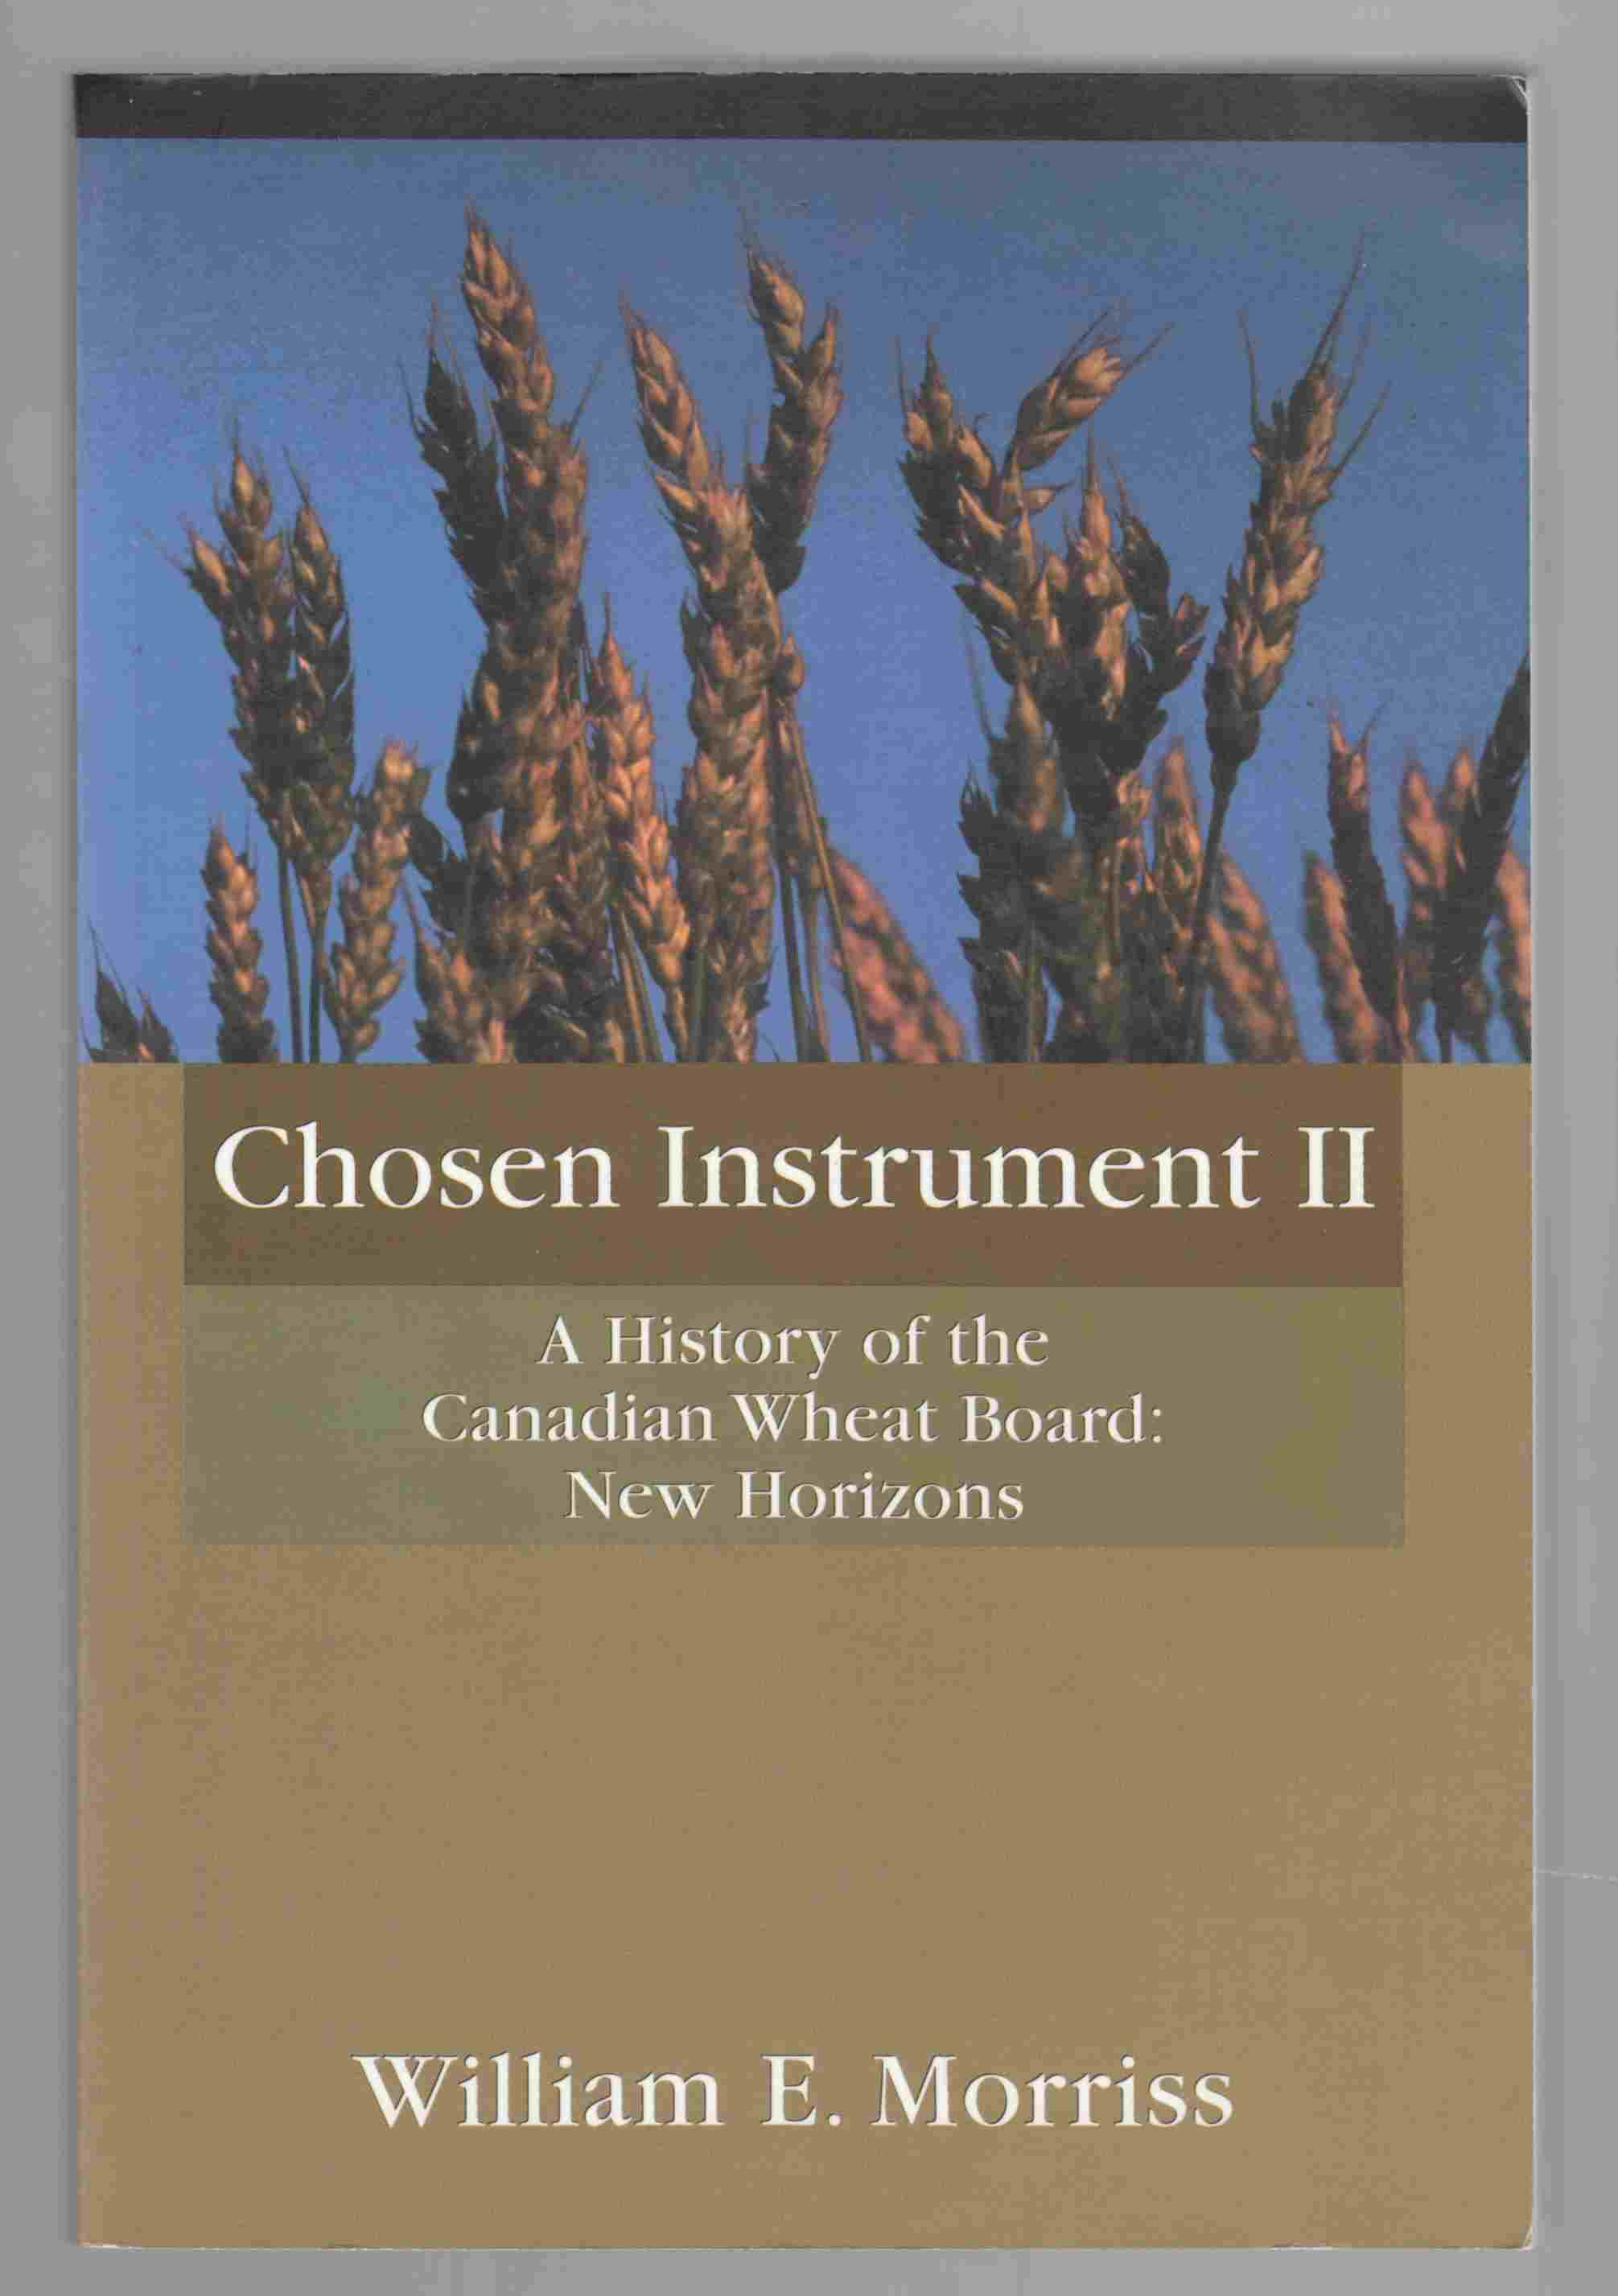 Image for Chosen Instrument II A History of the Canadian Wheat Board: New Horizons